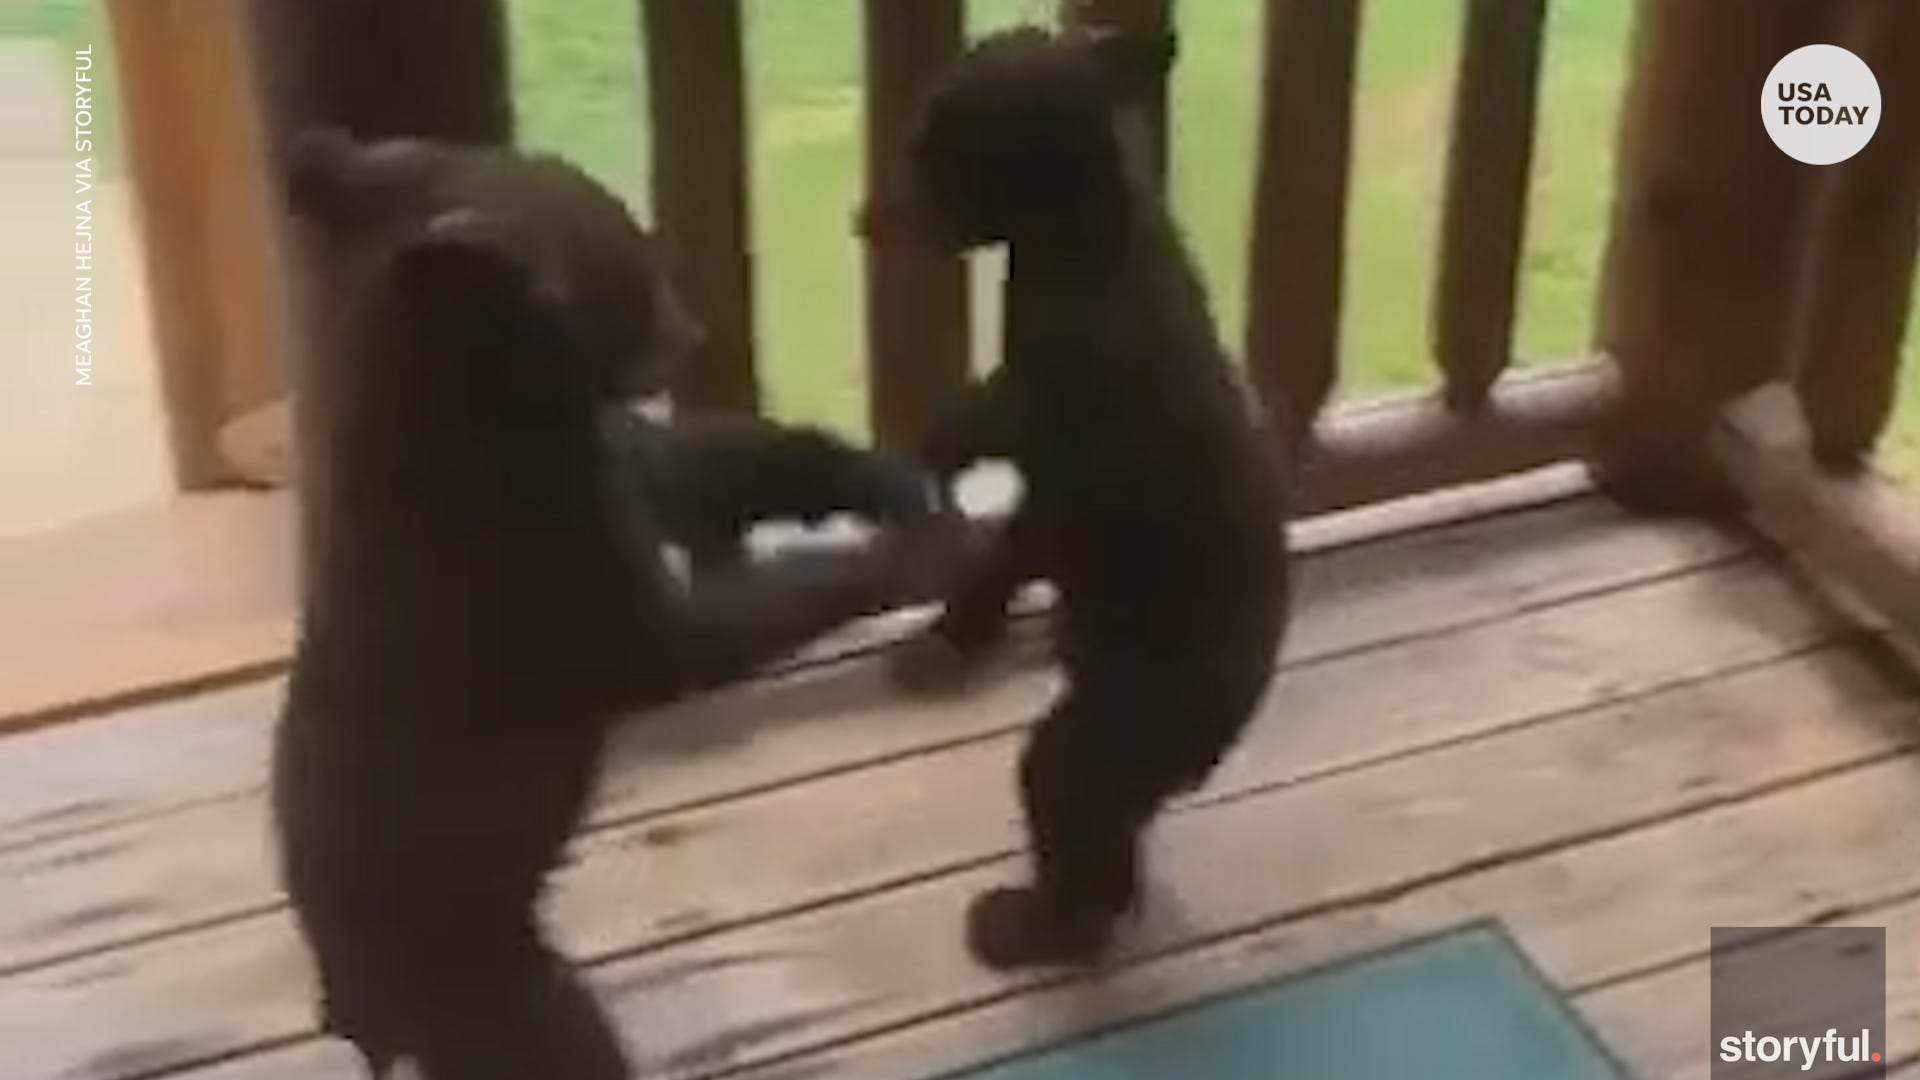 Adorable bear cubs find themselves playing on family s deck